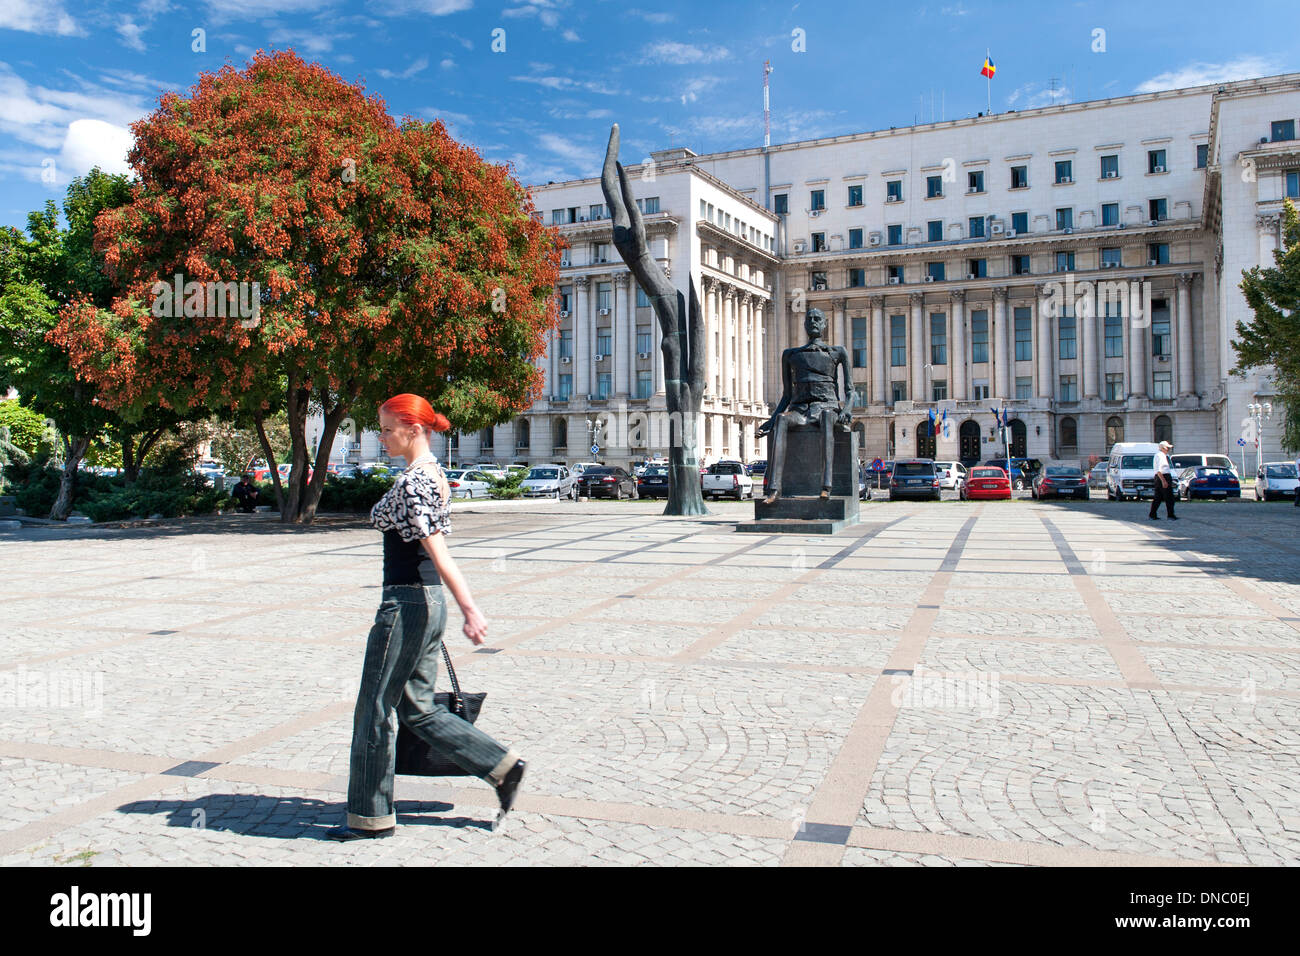 Woman walking through Revolution Square in Bucharest, the capital of Romania. - Stock Image